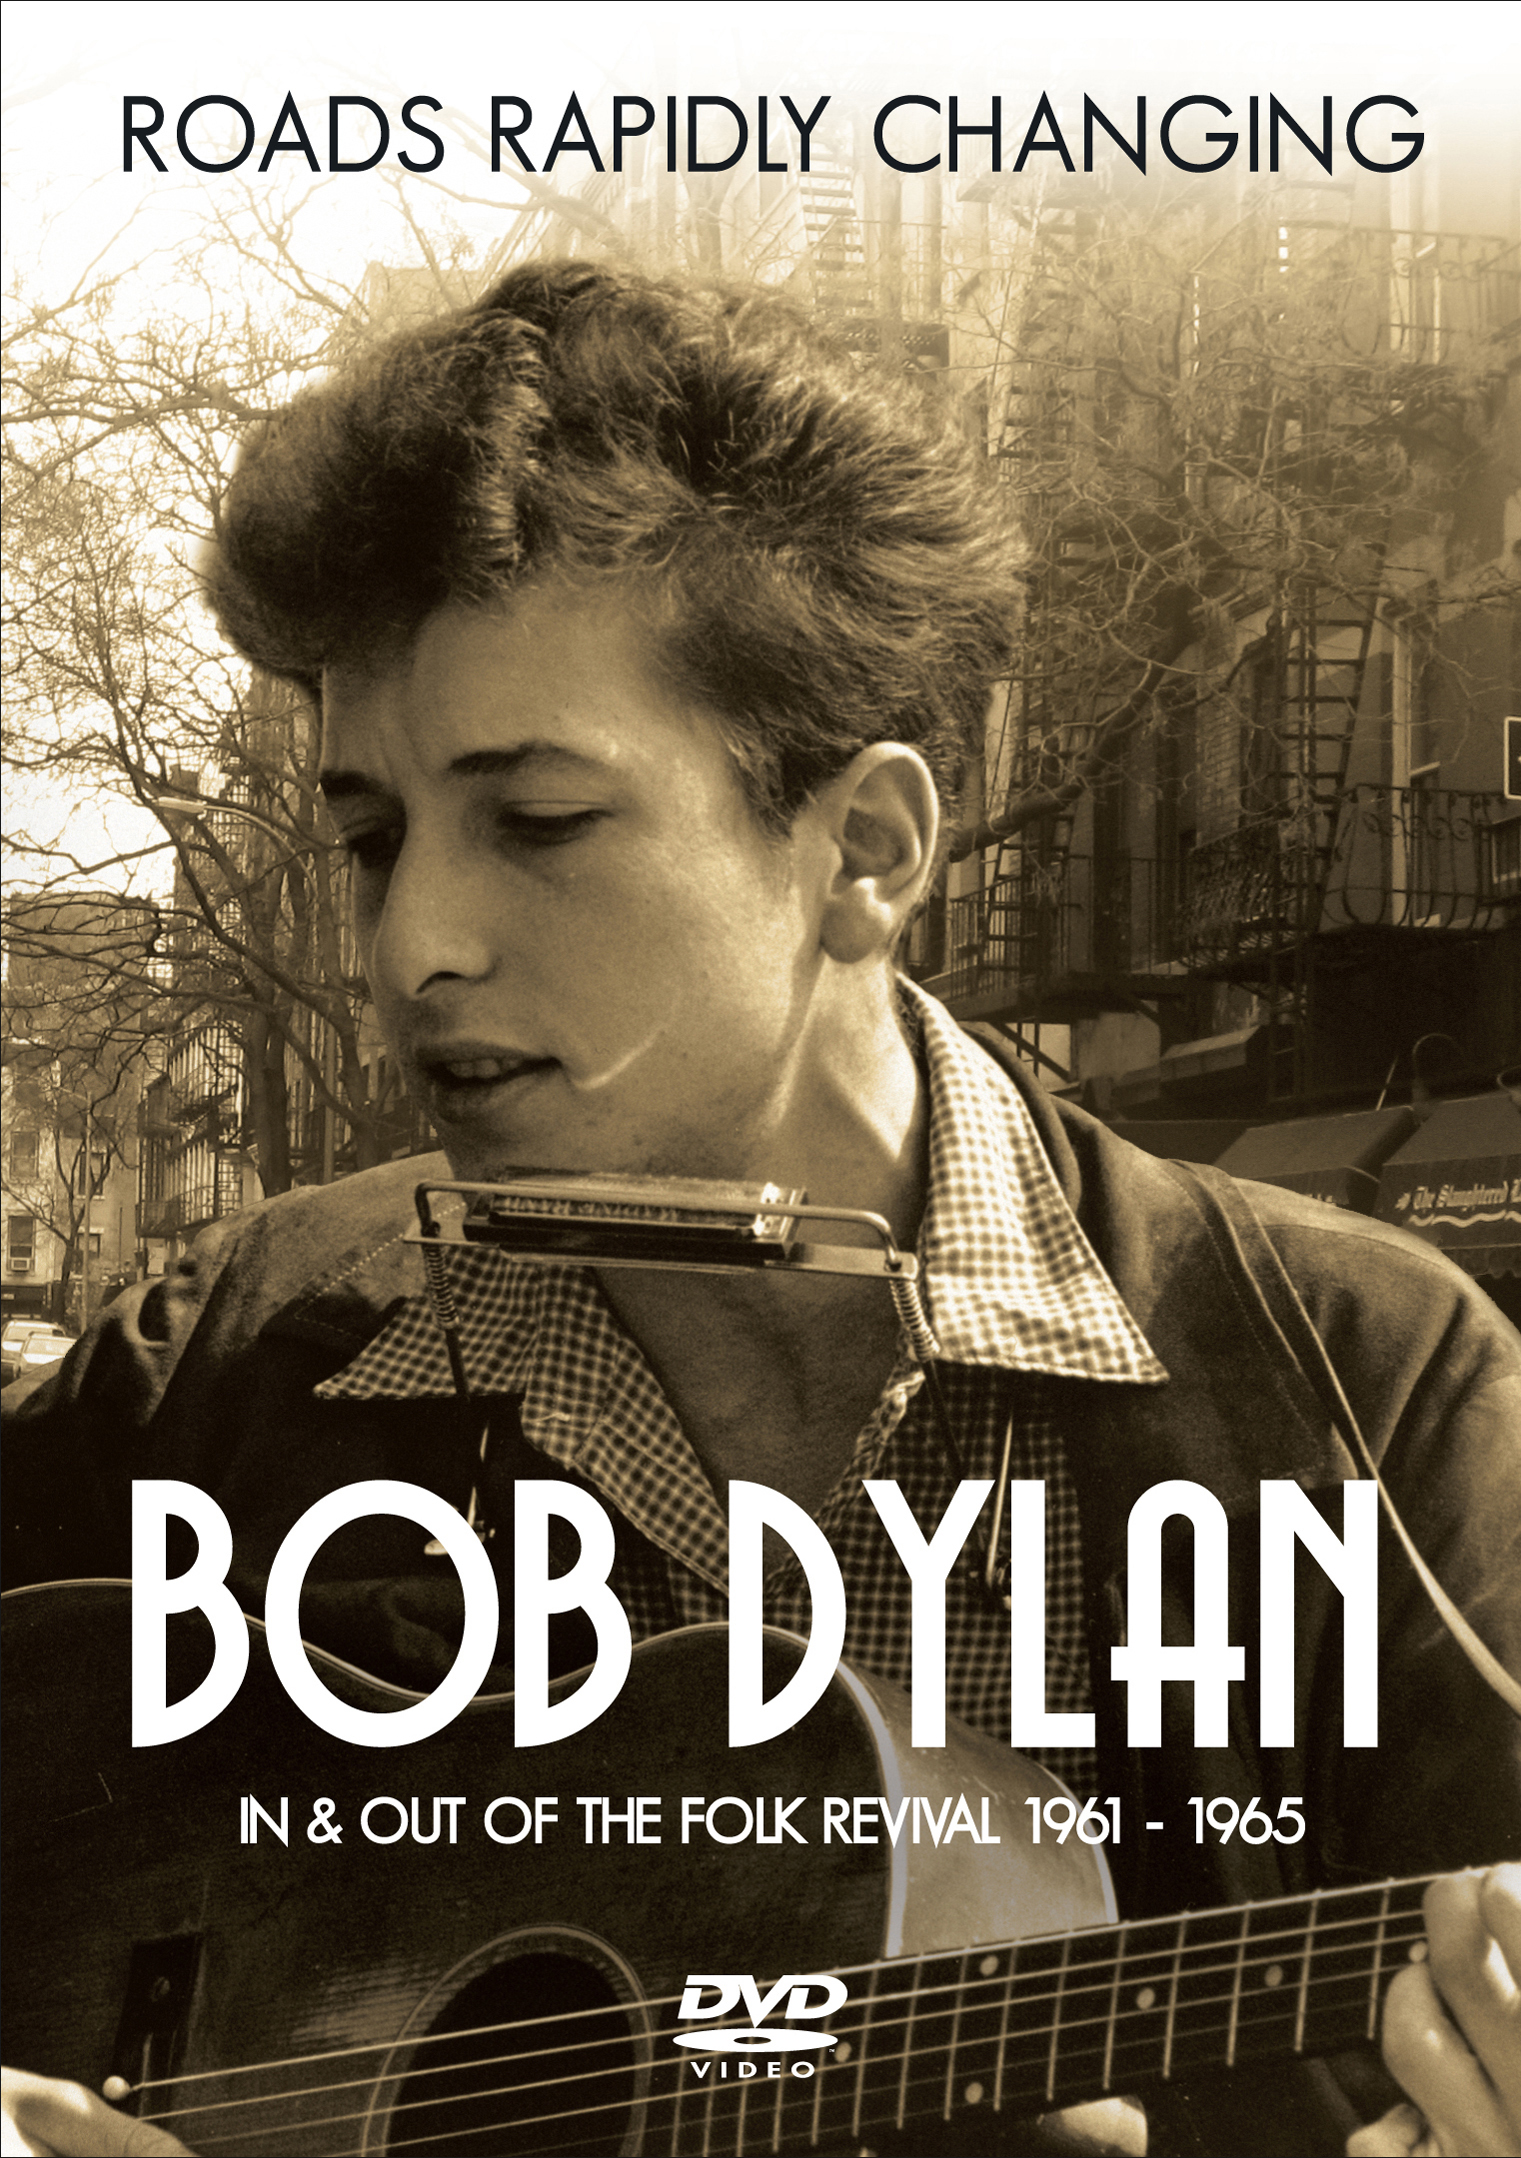 Bob Dylan: Roads Rapidly Changing - In & Out of the Folk Revival 1961-1965